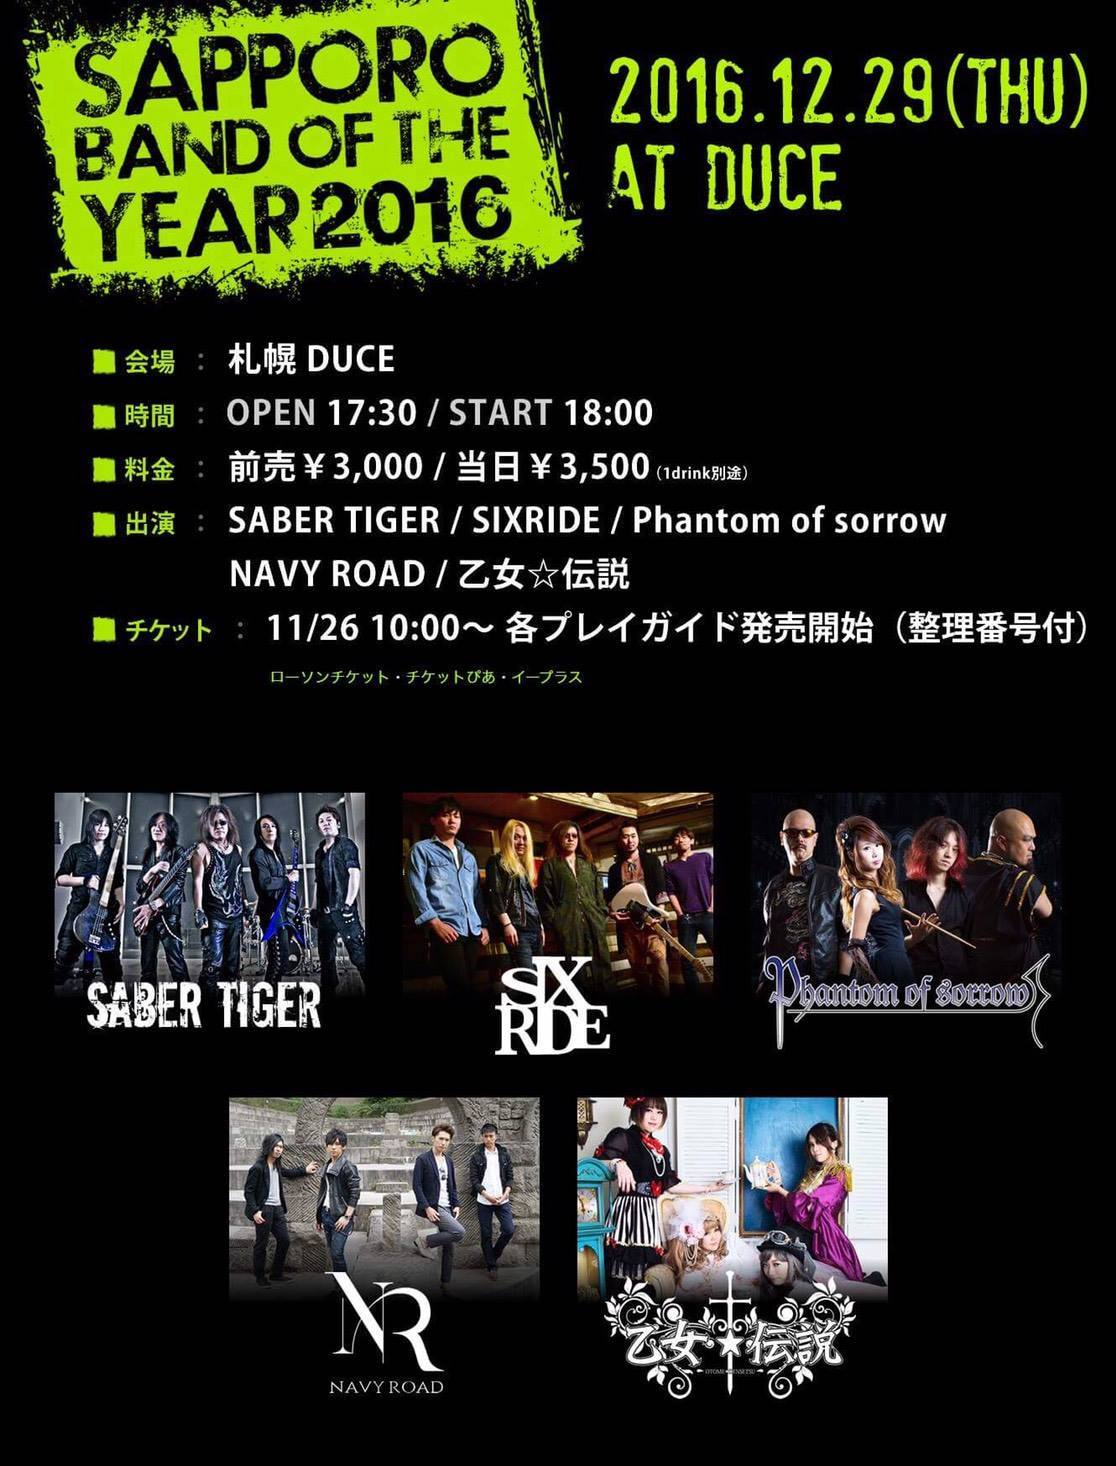 SAPPORO BAND OF THE YEAR 2016